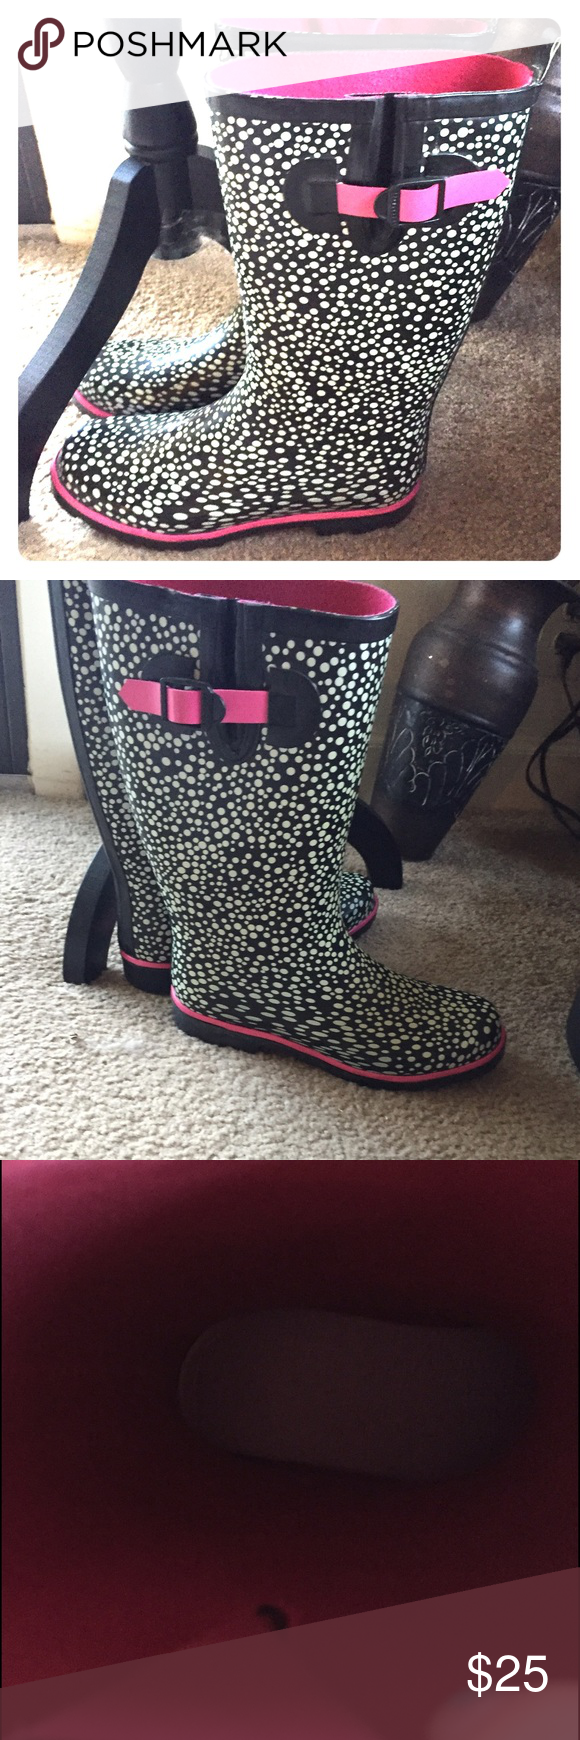 🆕 cute polka dot splatter rain boots Very cute! Size  m (7-8.) Preloved but lots of life left. 👺NO TRADES DONT ASK! ✌🏼️Transactions through posh only!  😻 friendly home 💃🏼 if you ask a question about an item, please be ready to purchase (serious buyers only) ❤️Color may vary in person! 💗⭐️Bundles of 5+ LISTINGS are 5️⃣0️⃣% off! ⭐️buyer pays extra shipping if likely to be over 5 lbs 🙋thanks for looking! Shoes Winter & Rain Boots